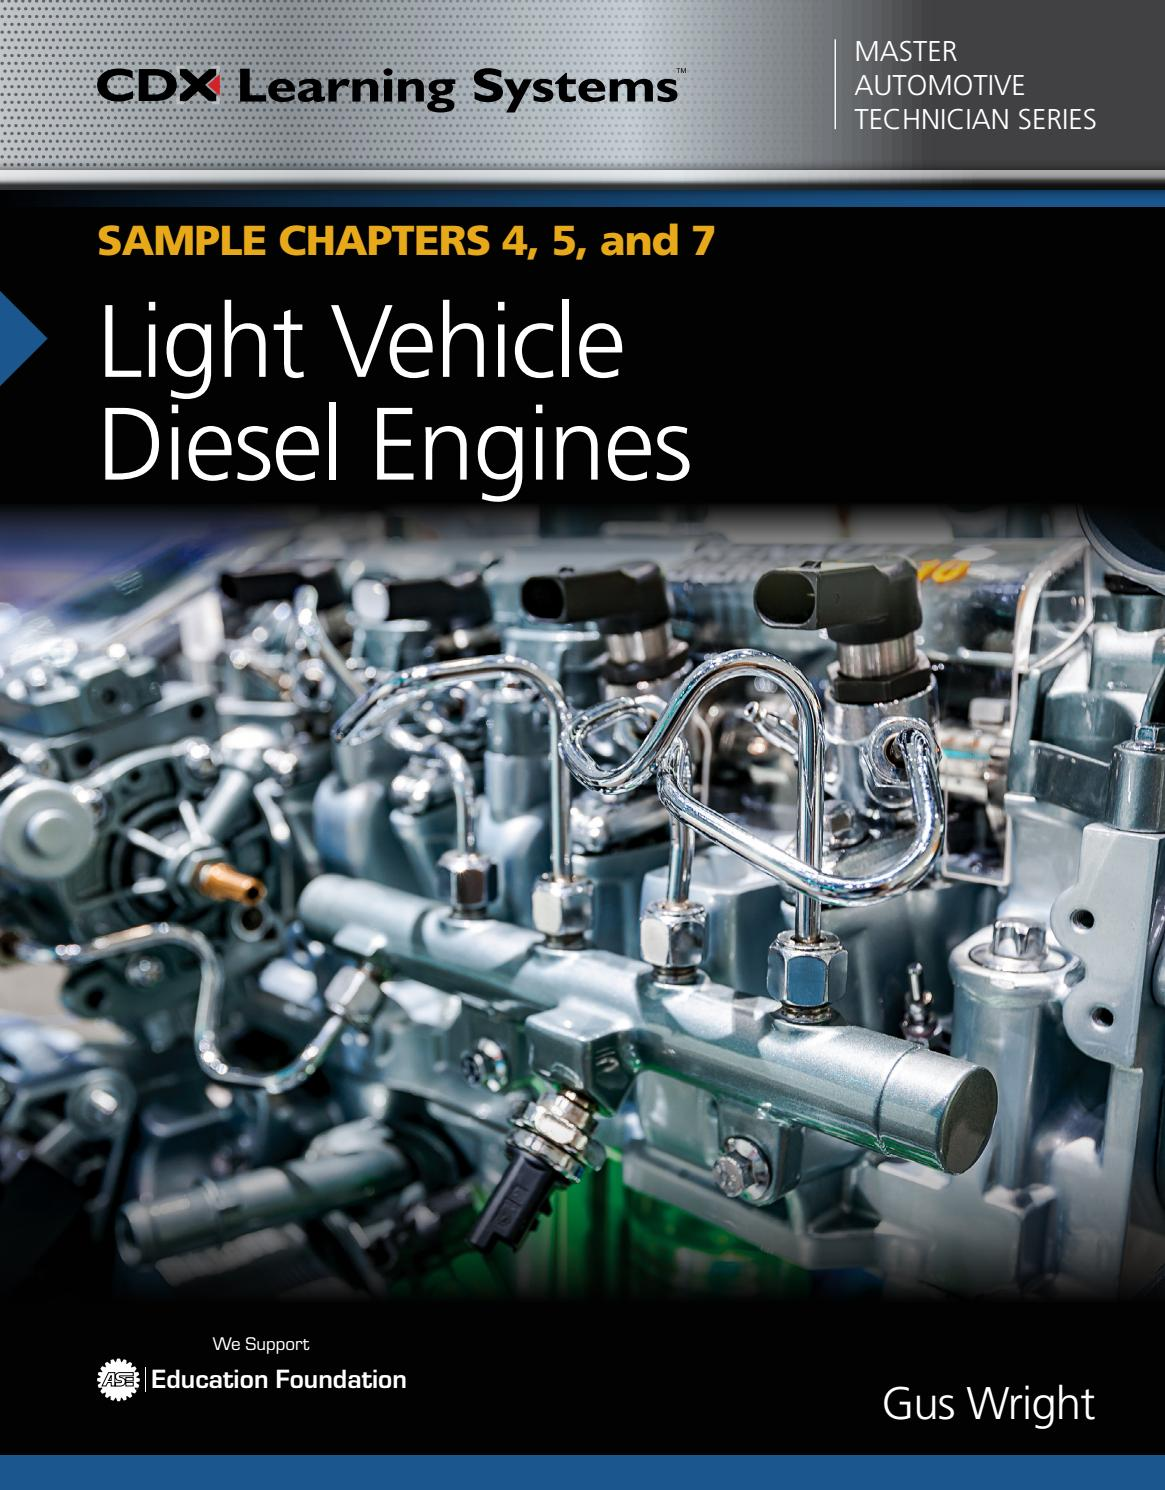 hight resolution of light vehicle diesel engines sample chapters 4 5 and 7